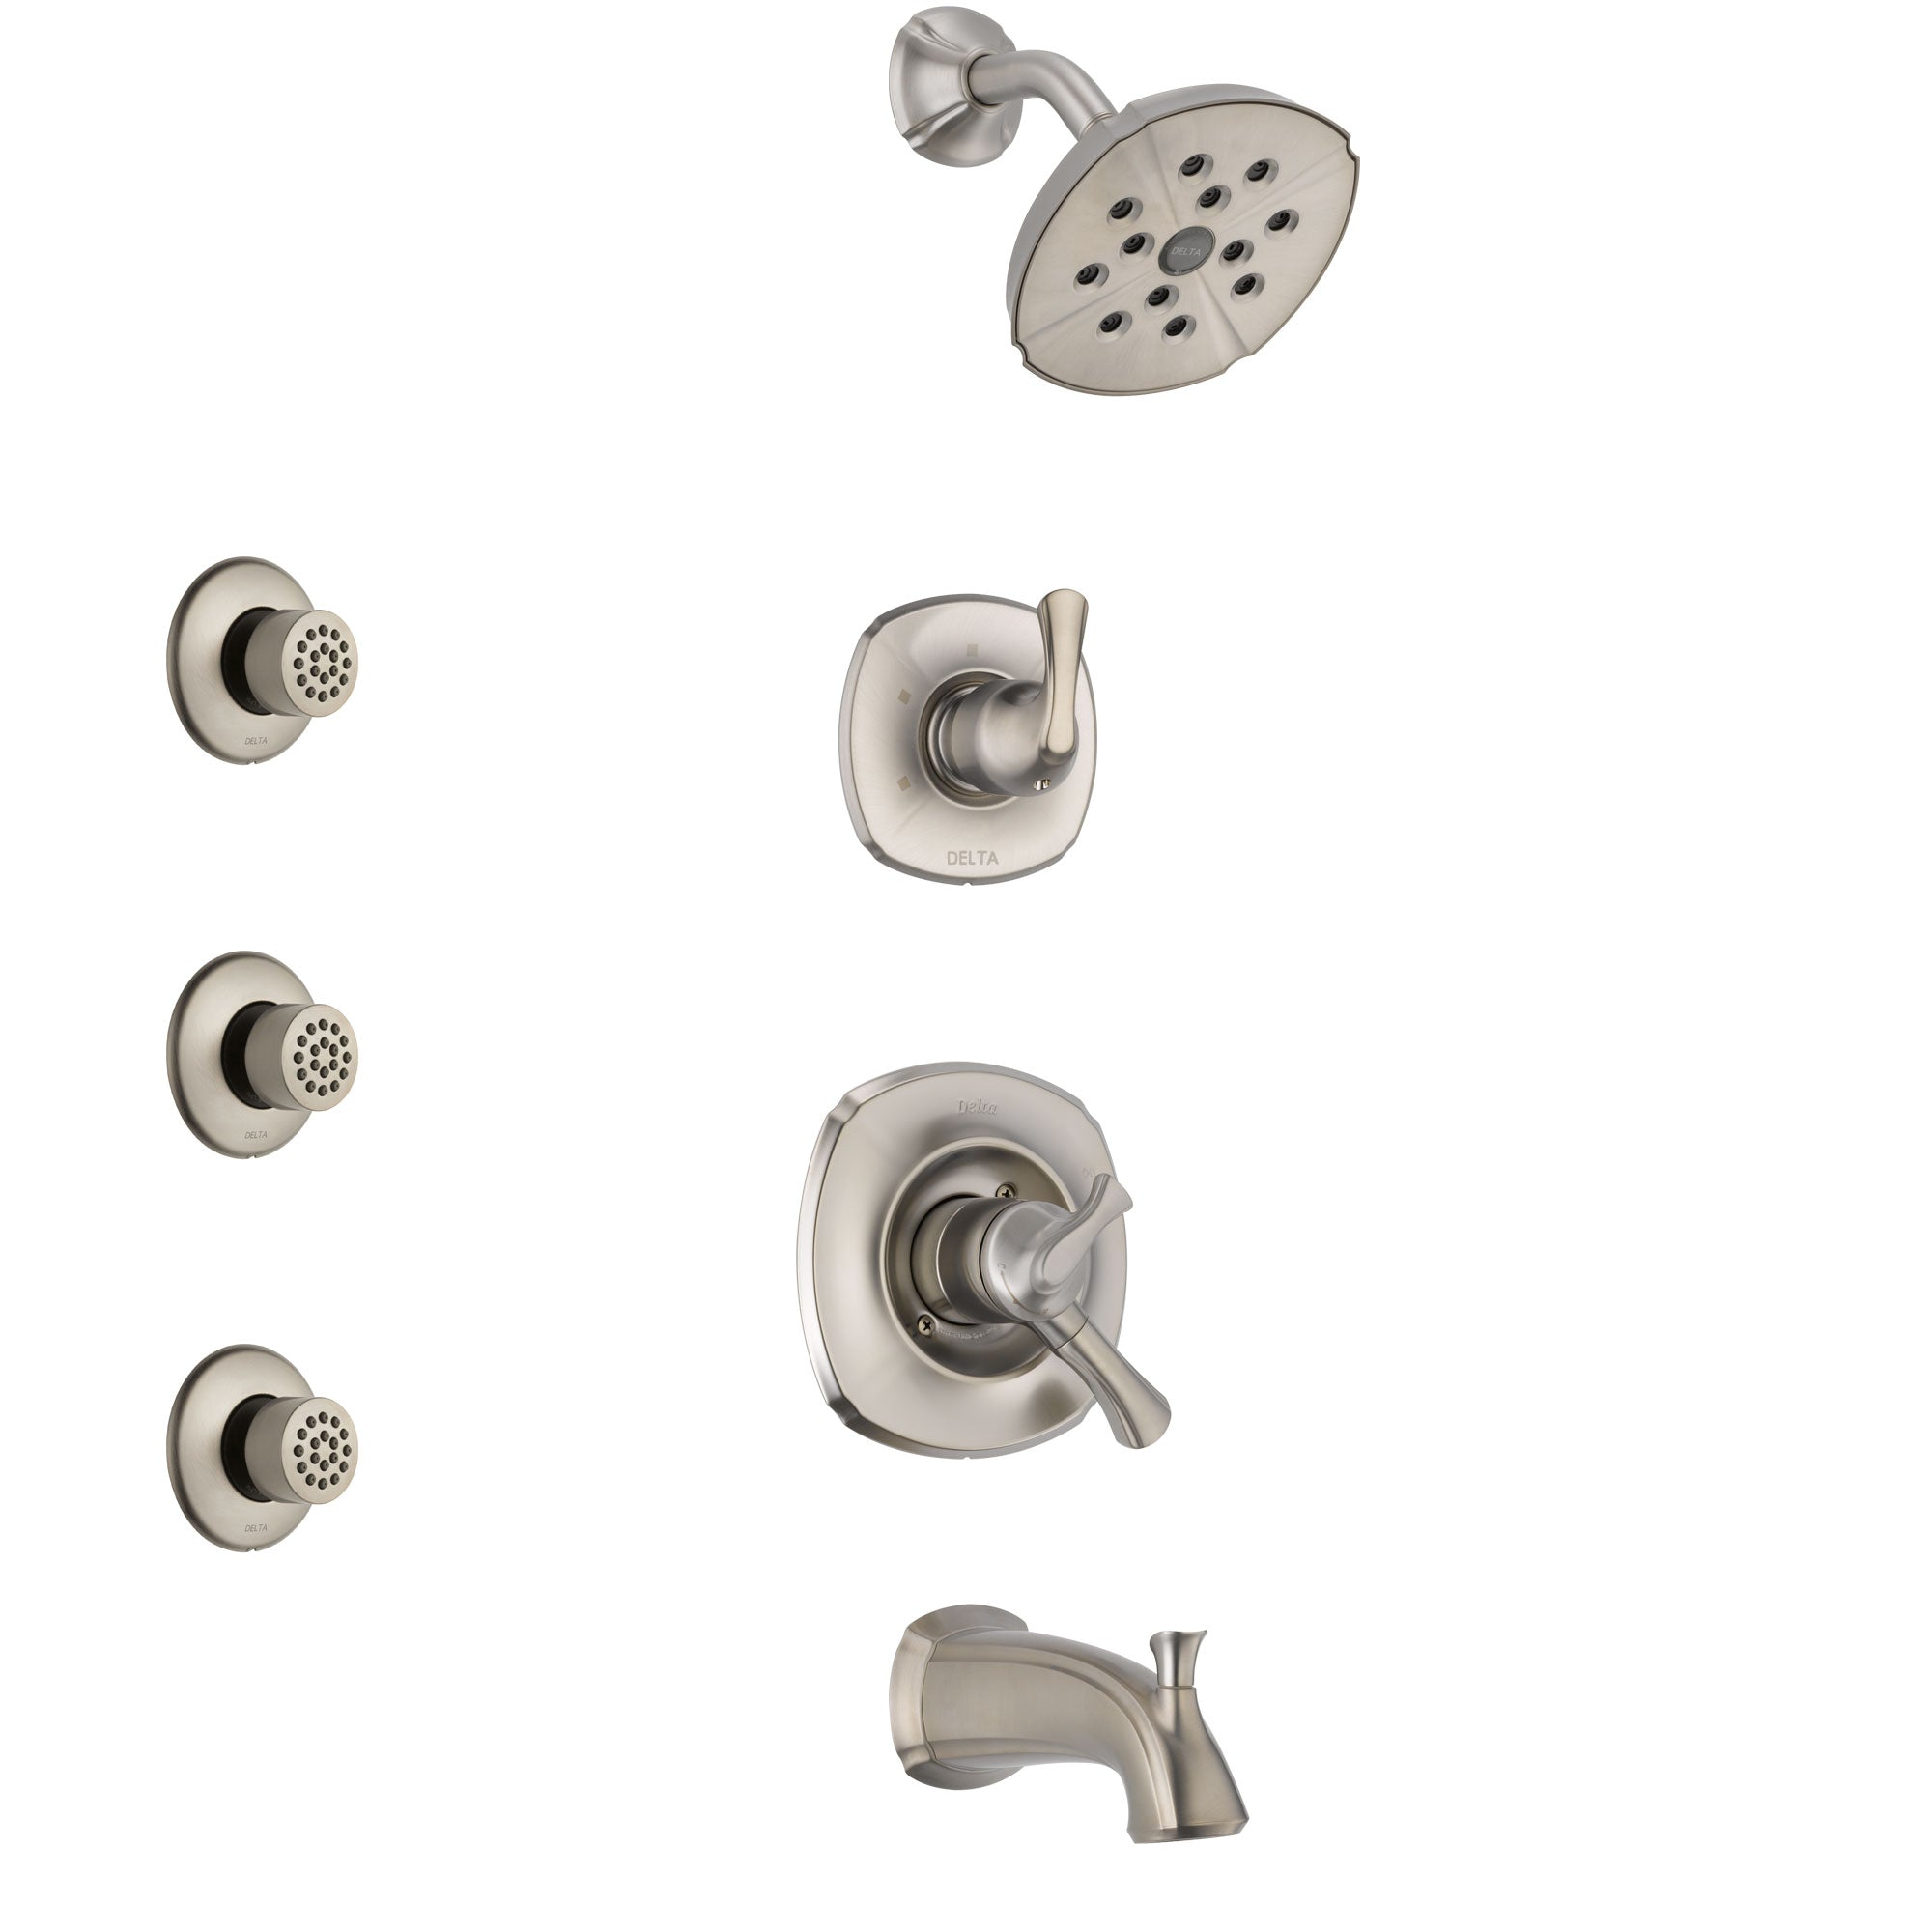 Delta Addison Stainless Steel Finish Tub and Shower System with Dual Control Handle, 3-Setting Diverter, Showerhead, and 3 Body Sprays SS17492SS2